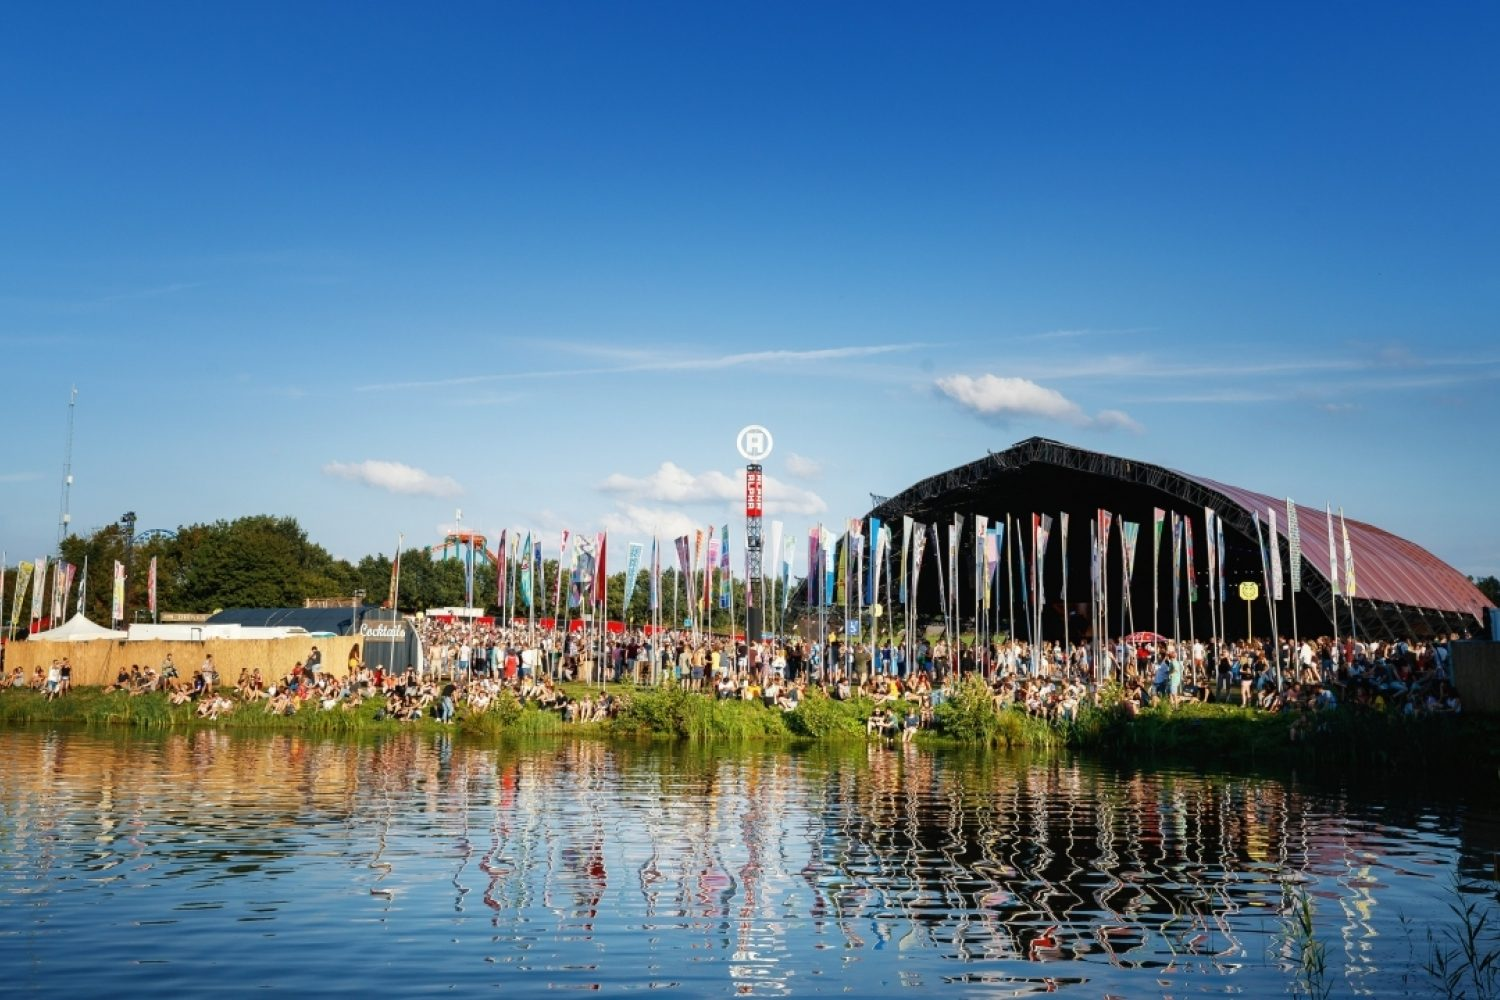 Get ready to book a plane ticket for festival season 2020